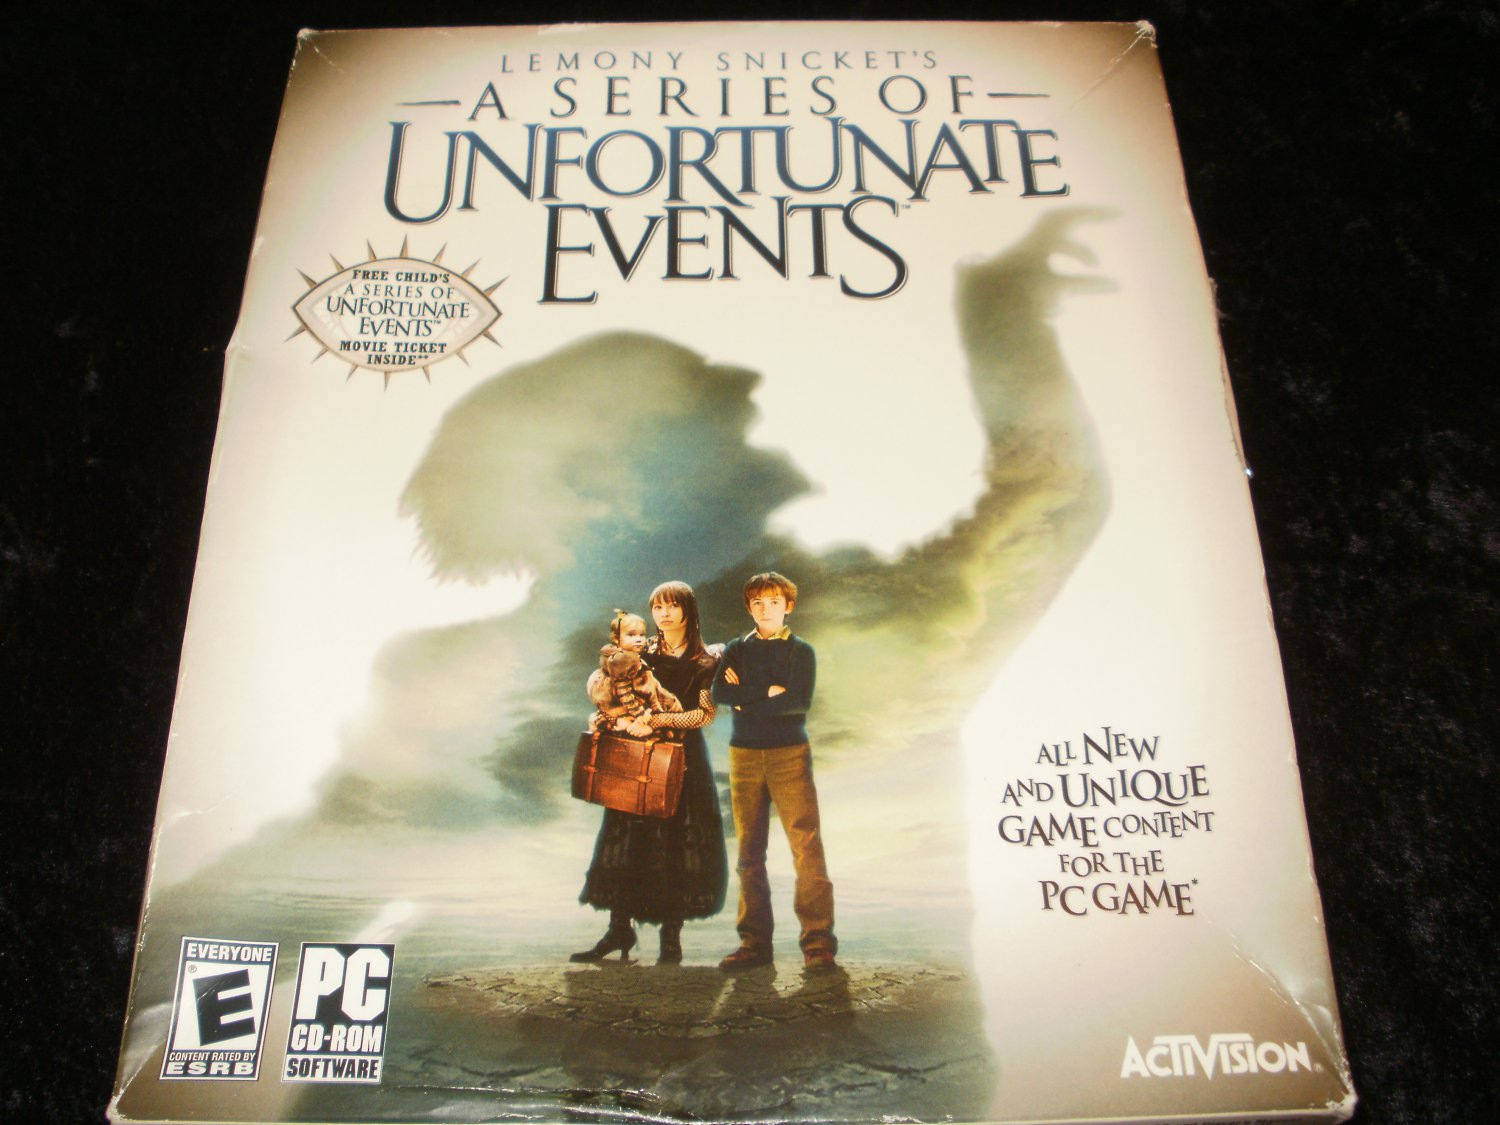 A Series of Unfortunate Events - 2004 Activision - Windows PC - Complete CIB